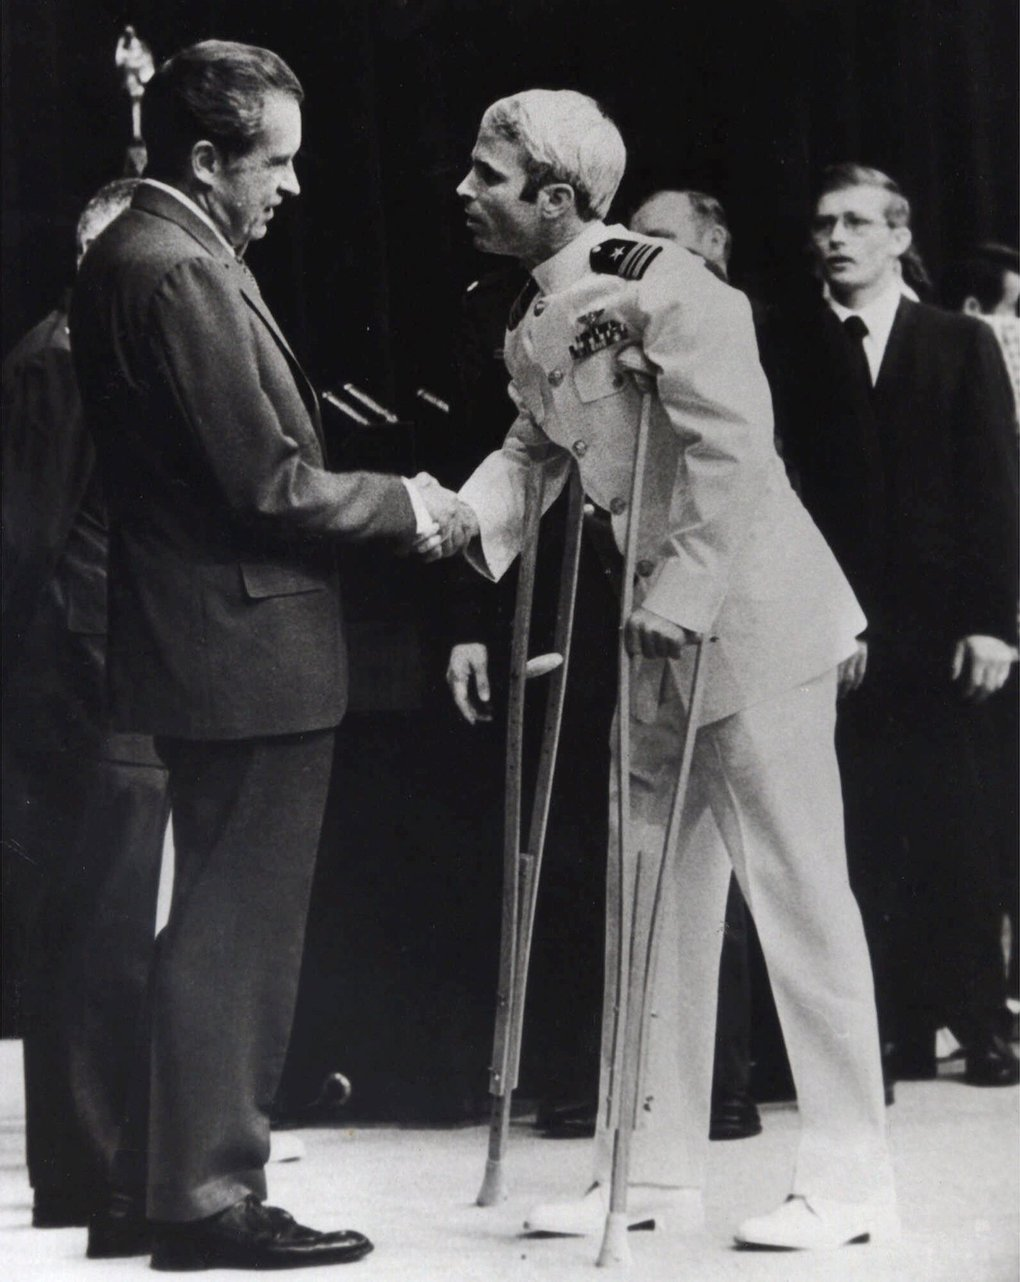 1973: U.S. Navy Lt. Cmdr. John McCain is greeted by President Richard Nixon, left, in Washington, after McCain's release from a prisoner of war camp in North Vietnam. (AP Photo/Harvey Georges, File)